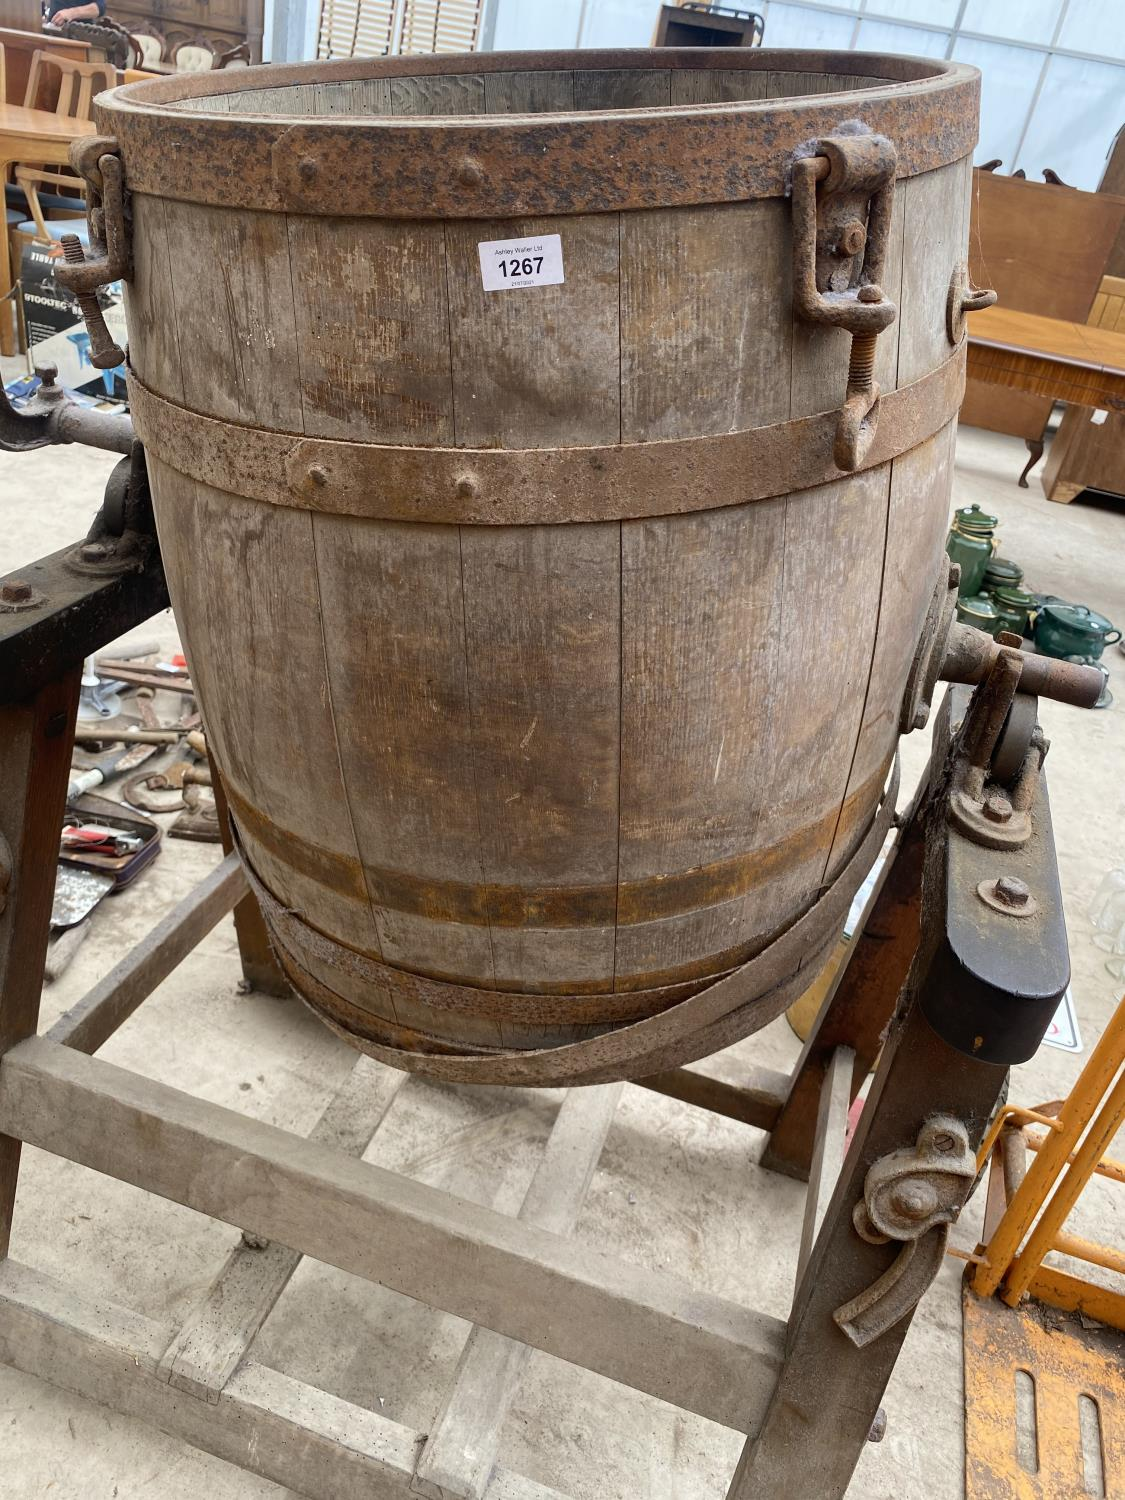 A LARGE VINTAGE BUTTER CHURN WITH STAND - Image 2 of 6